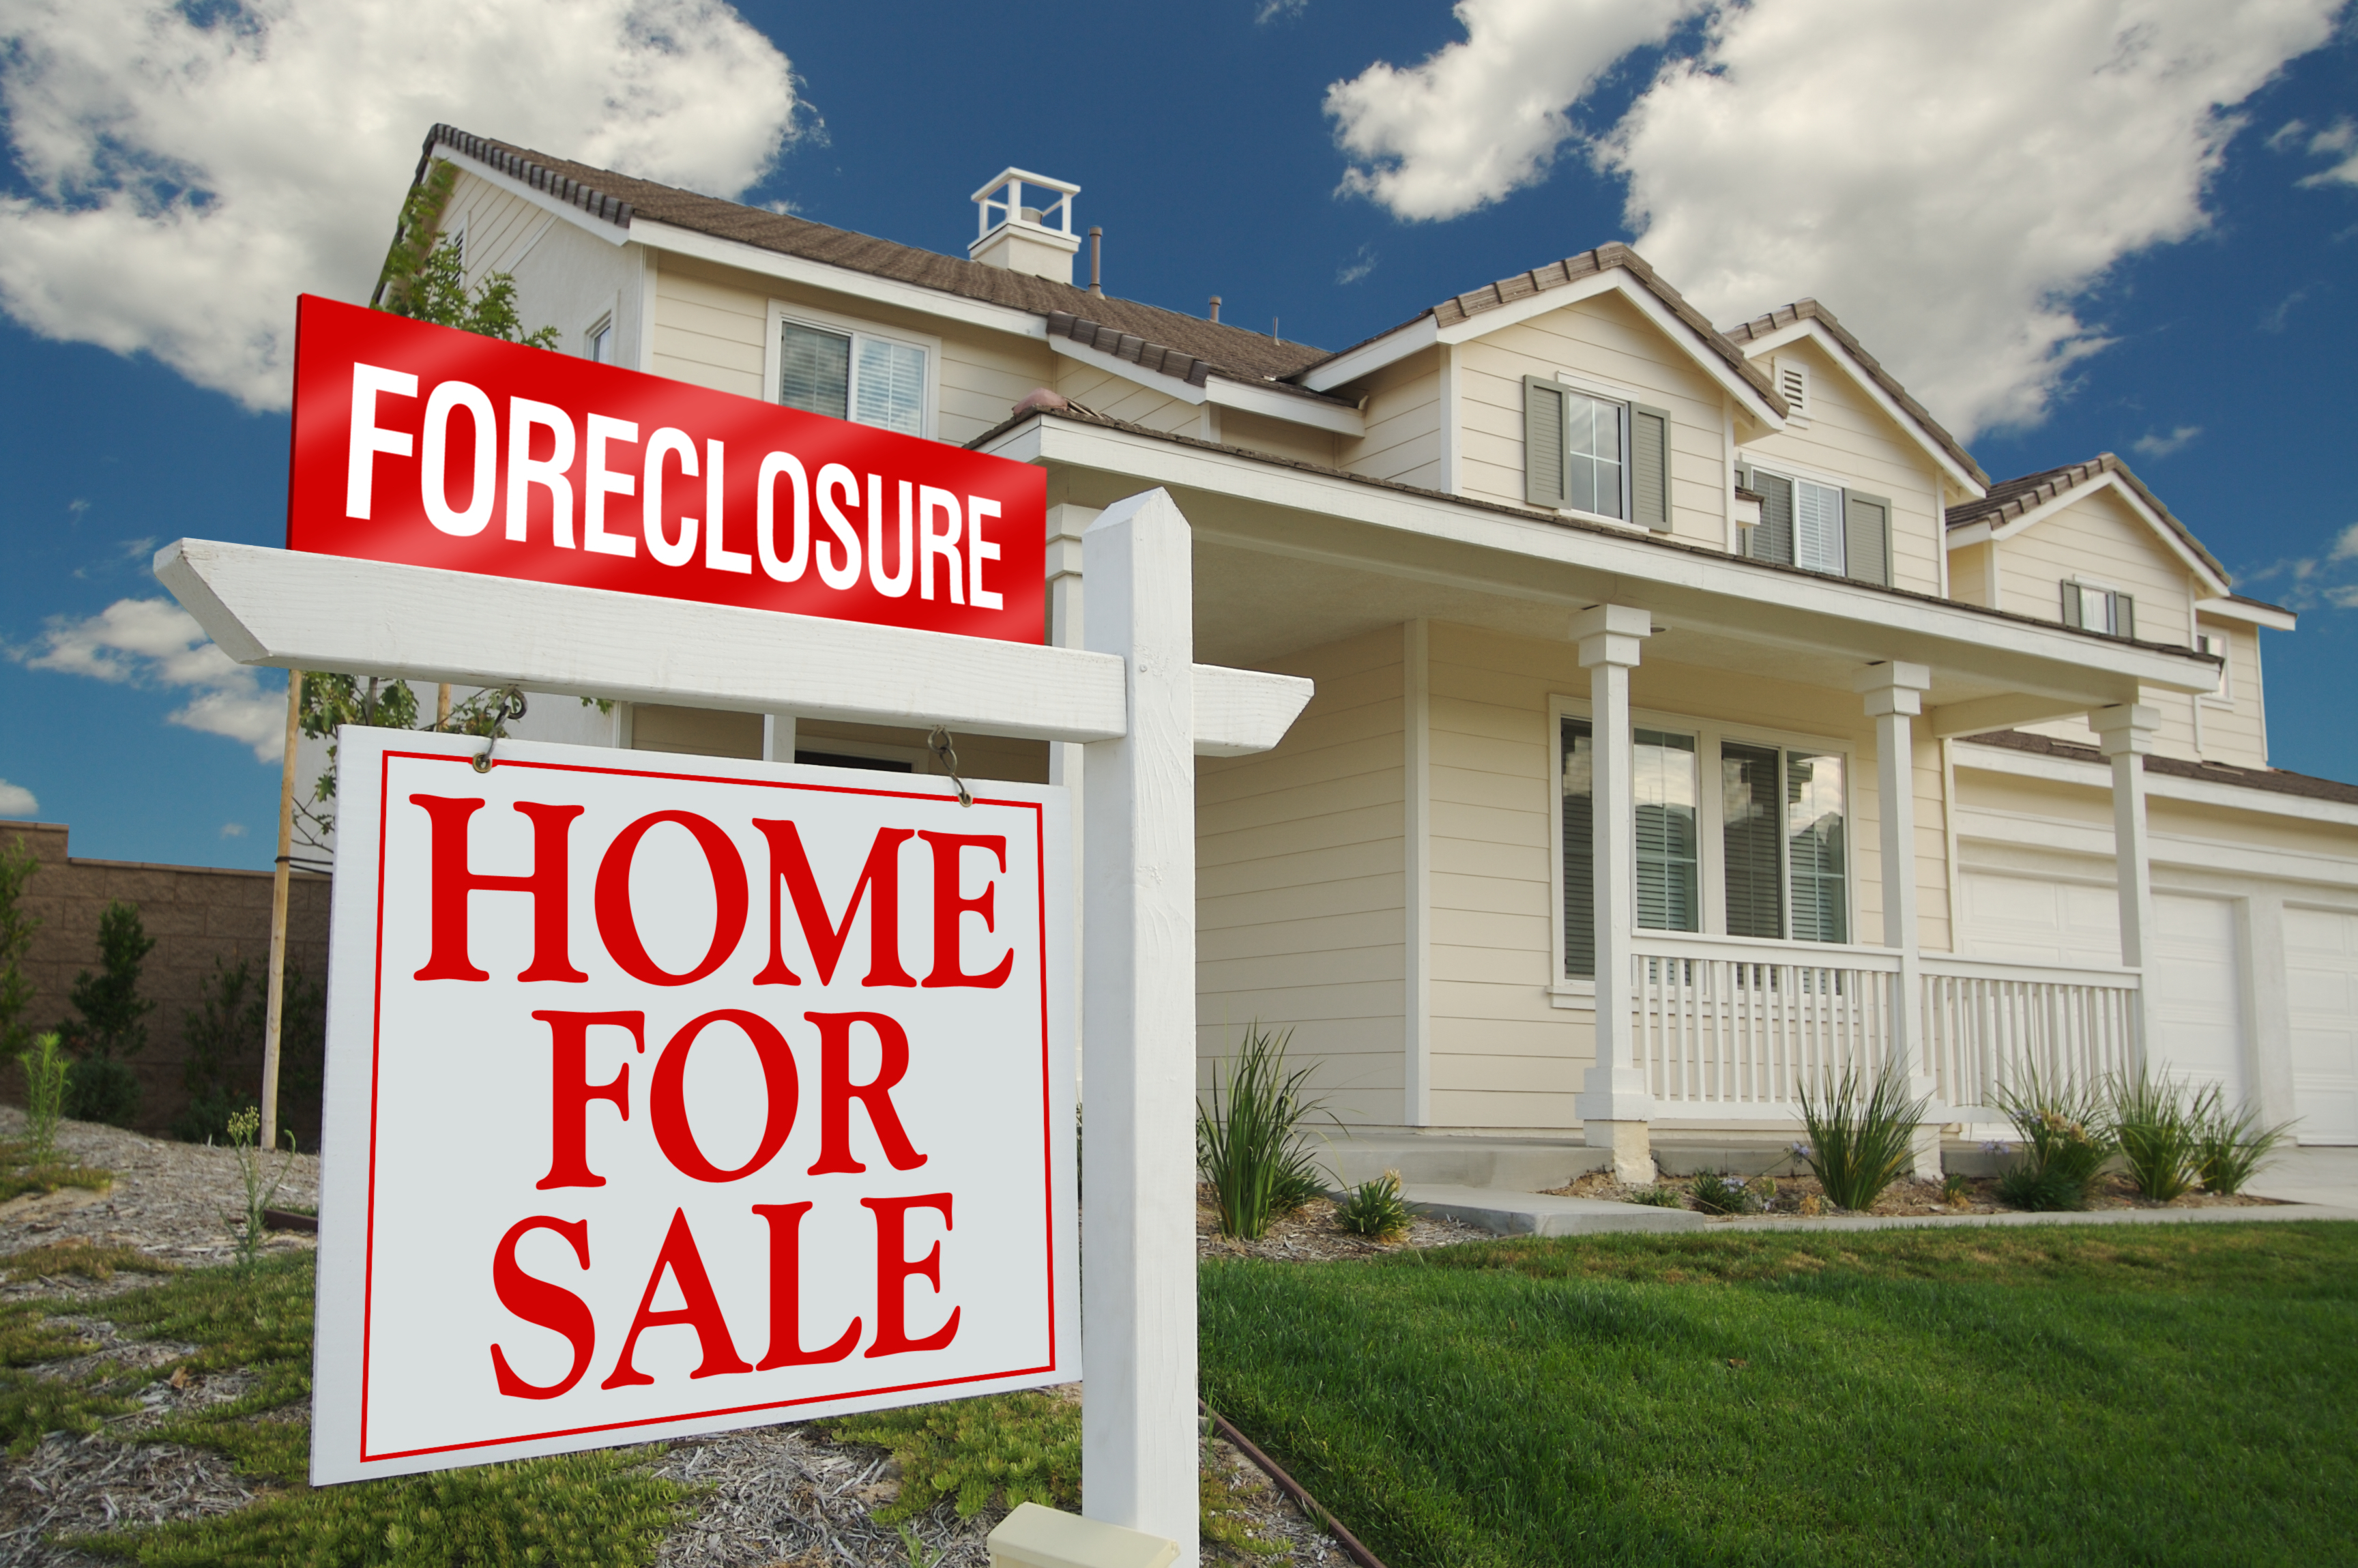 Foreclosure Sign and House with dramatic sky background.